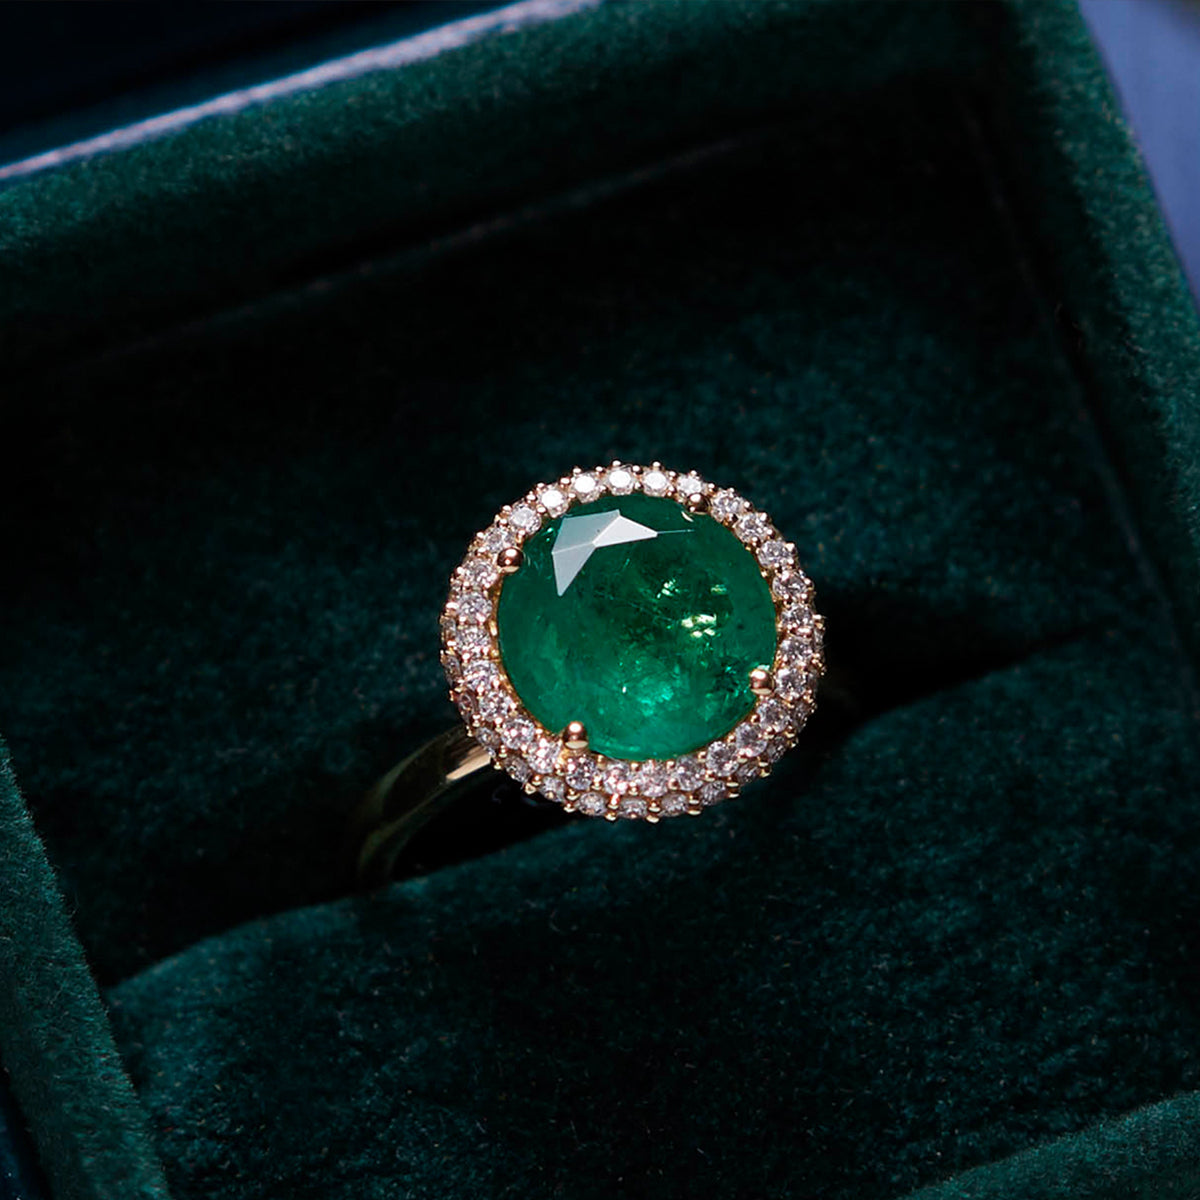 Clean Round Cut Emerald Vintage Ring from Fenton